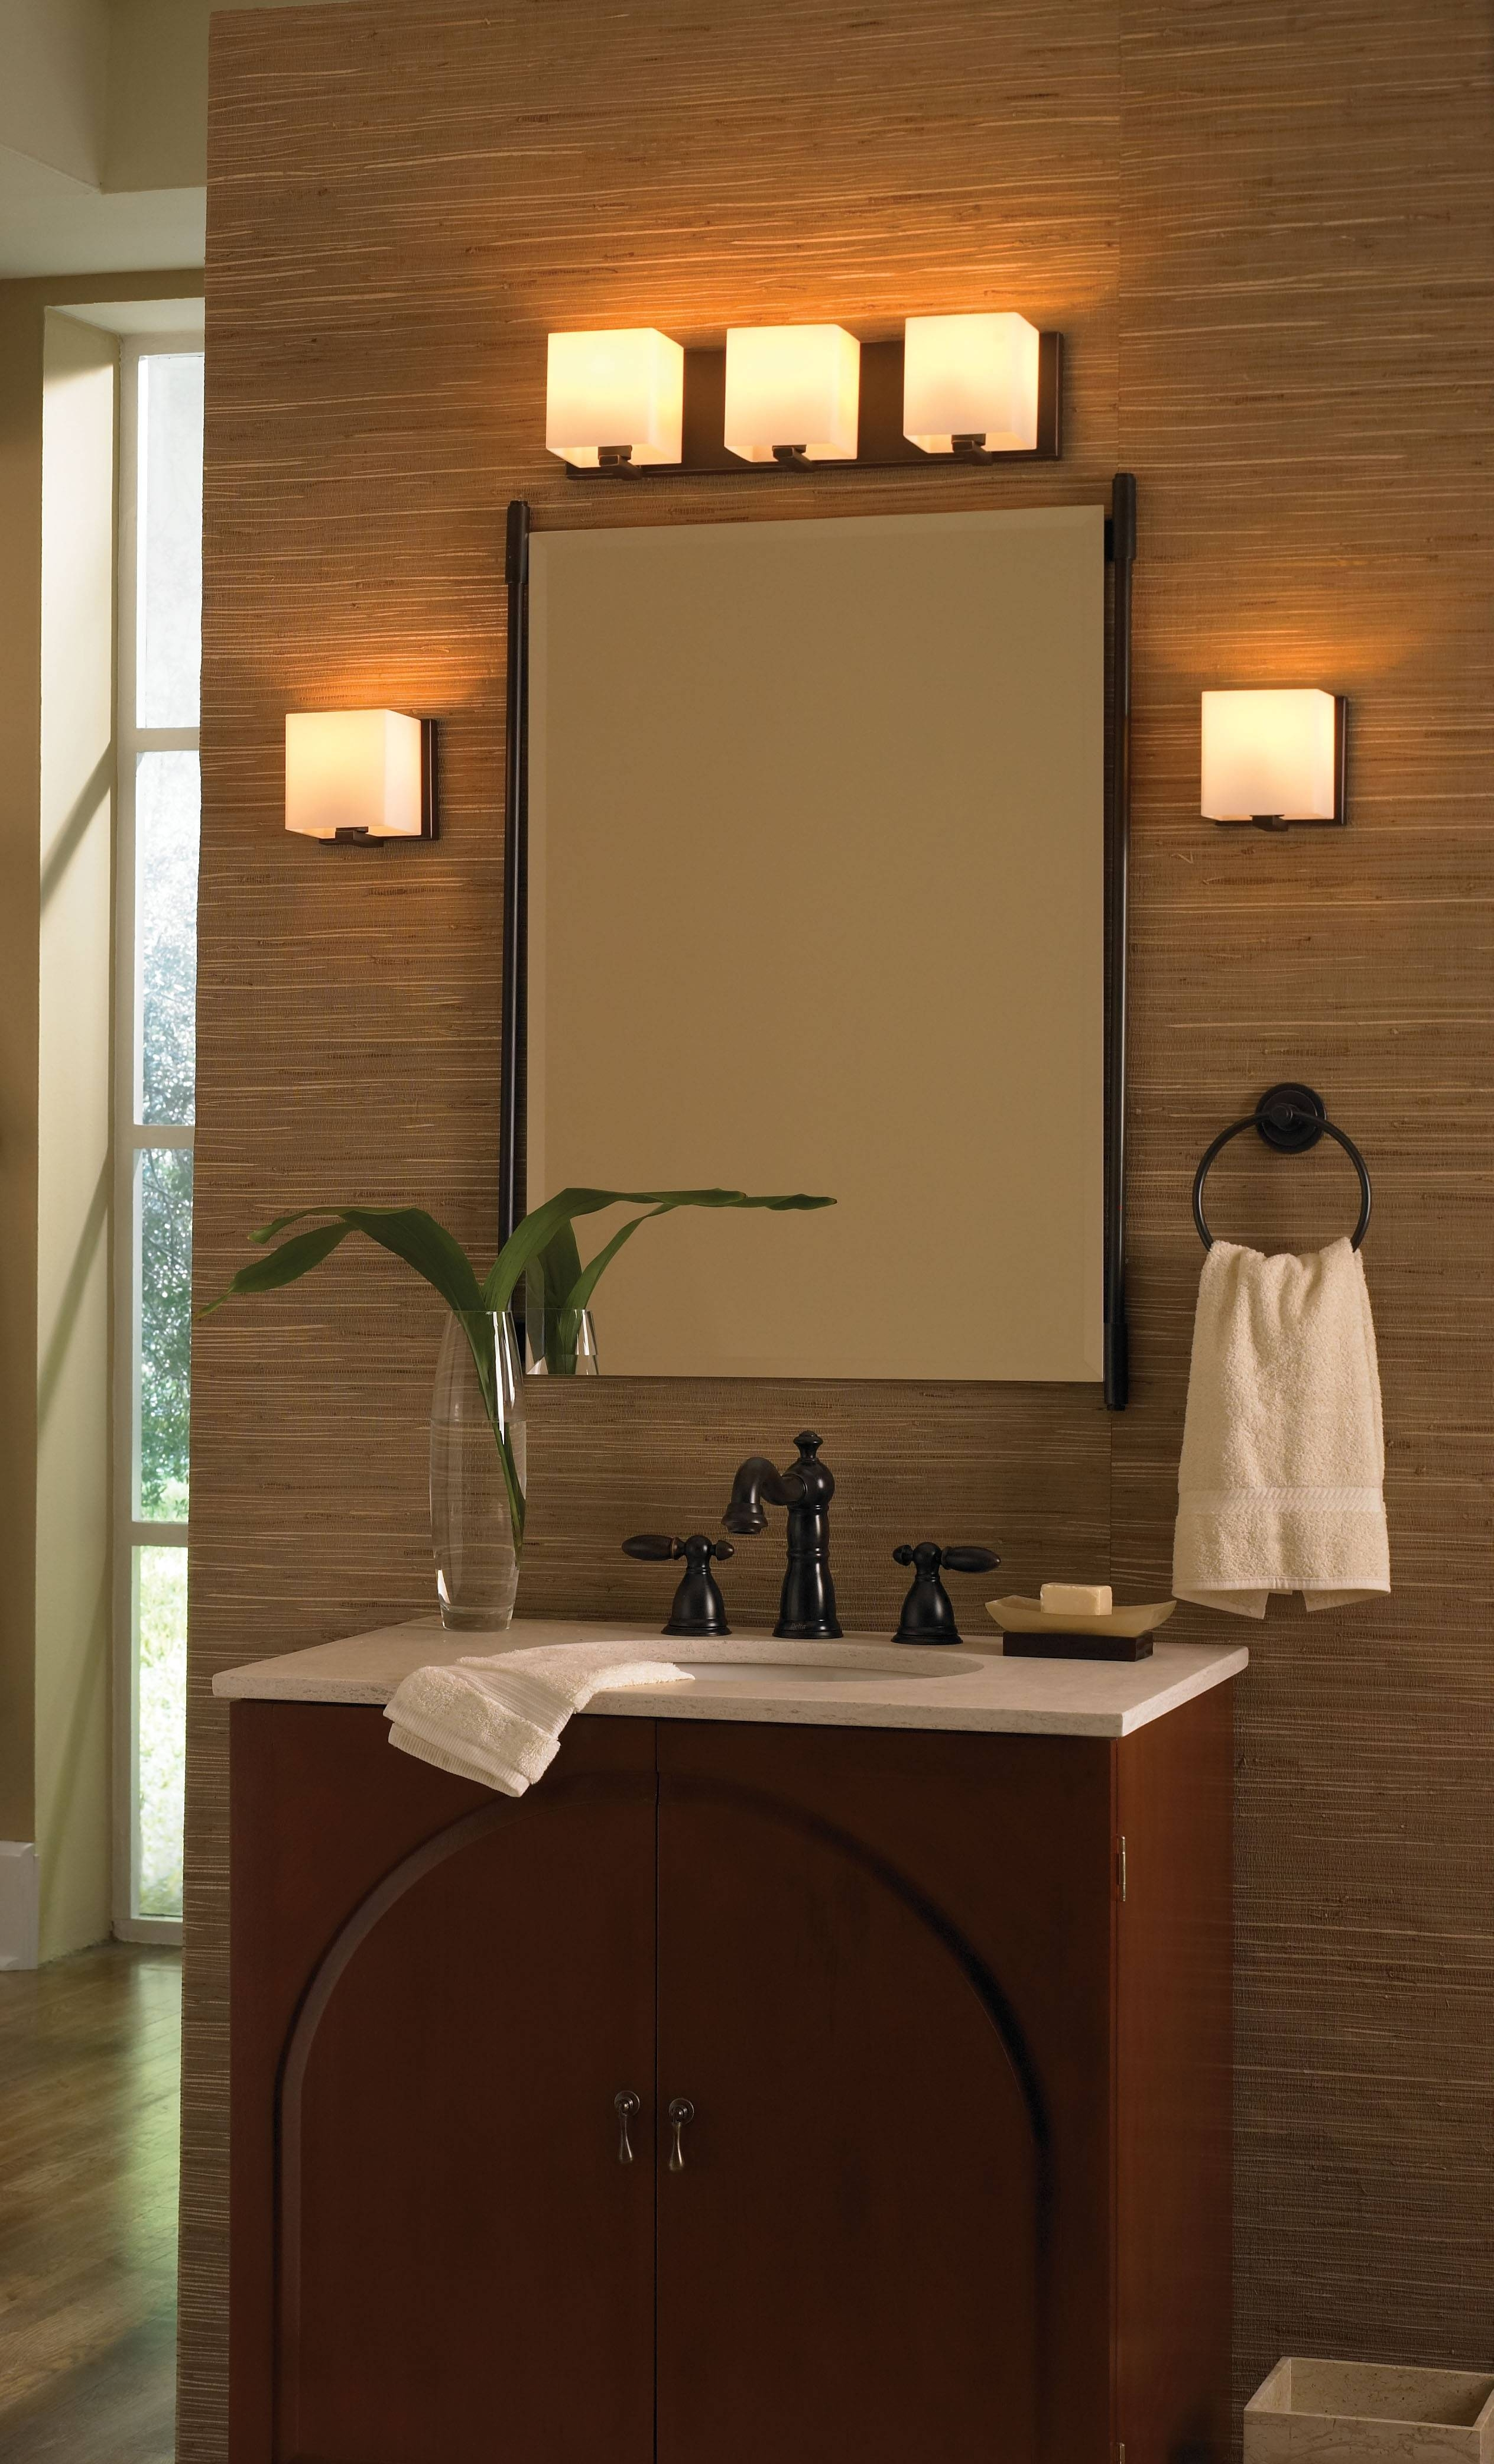 Home Design Unusual Floral Arrangements Framed Mirrors For with Unusual Mirrors For Bathrooms (Image 20 of 25)